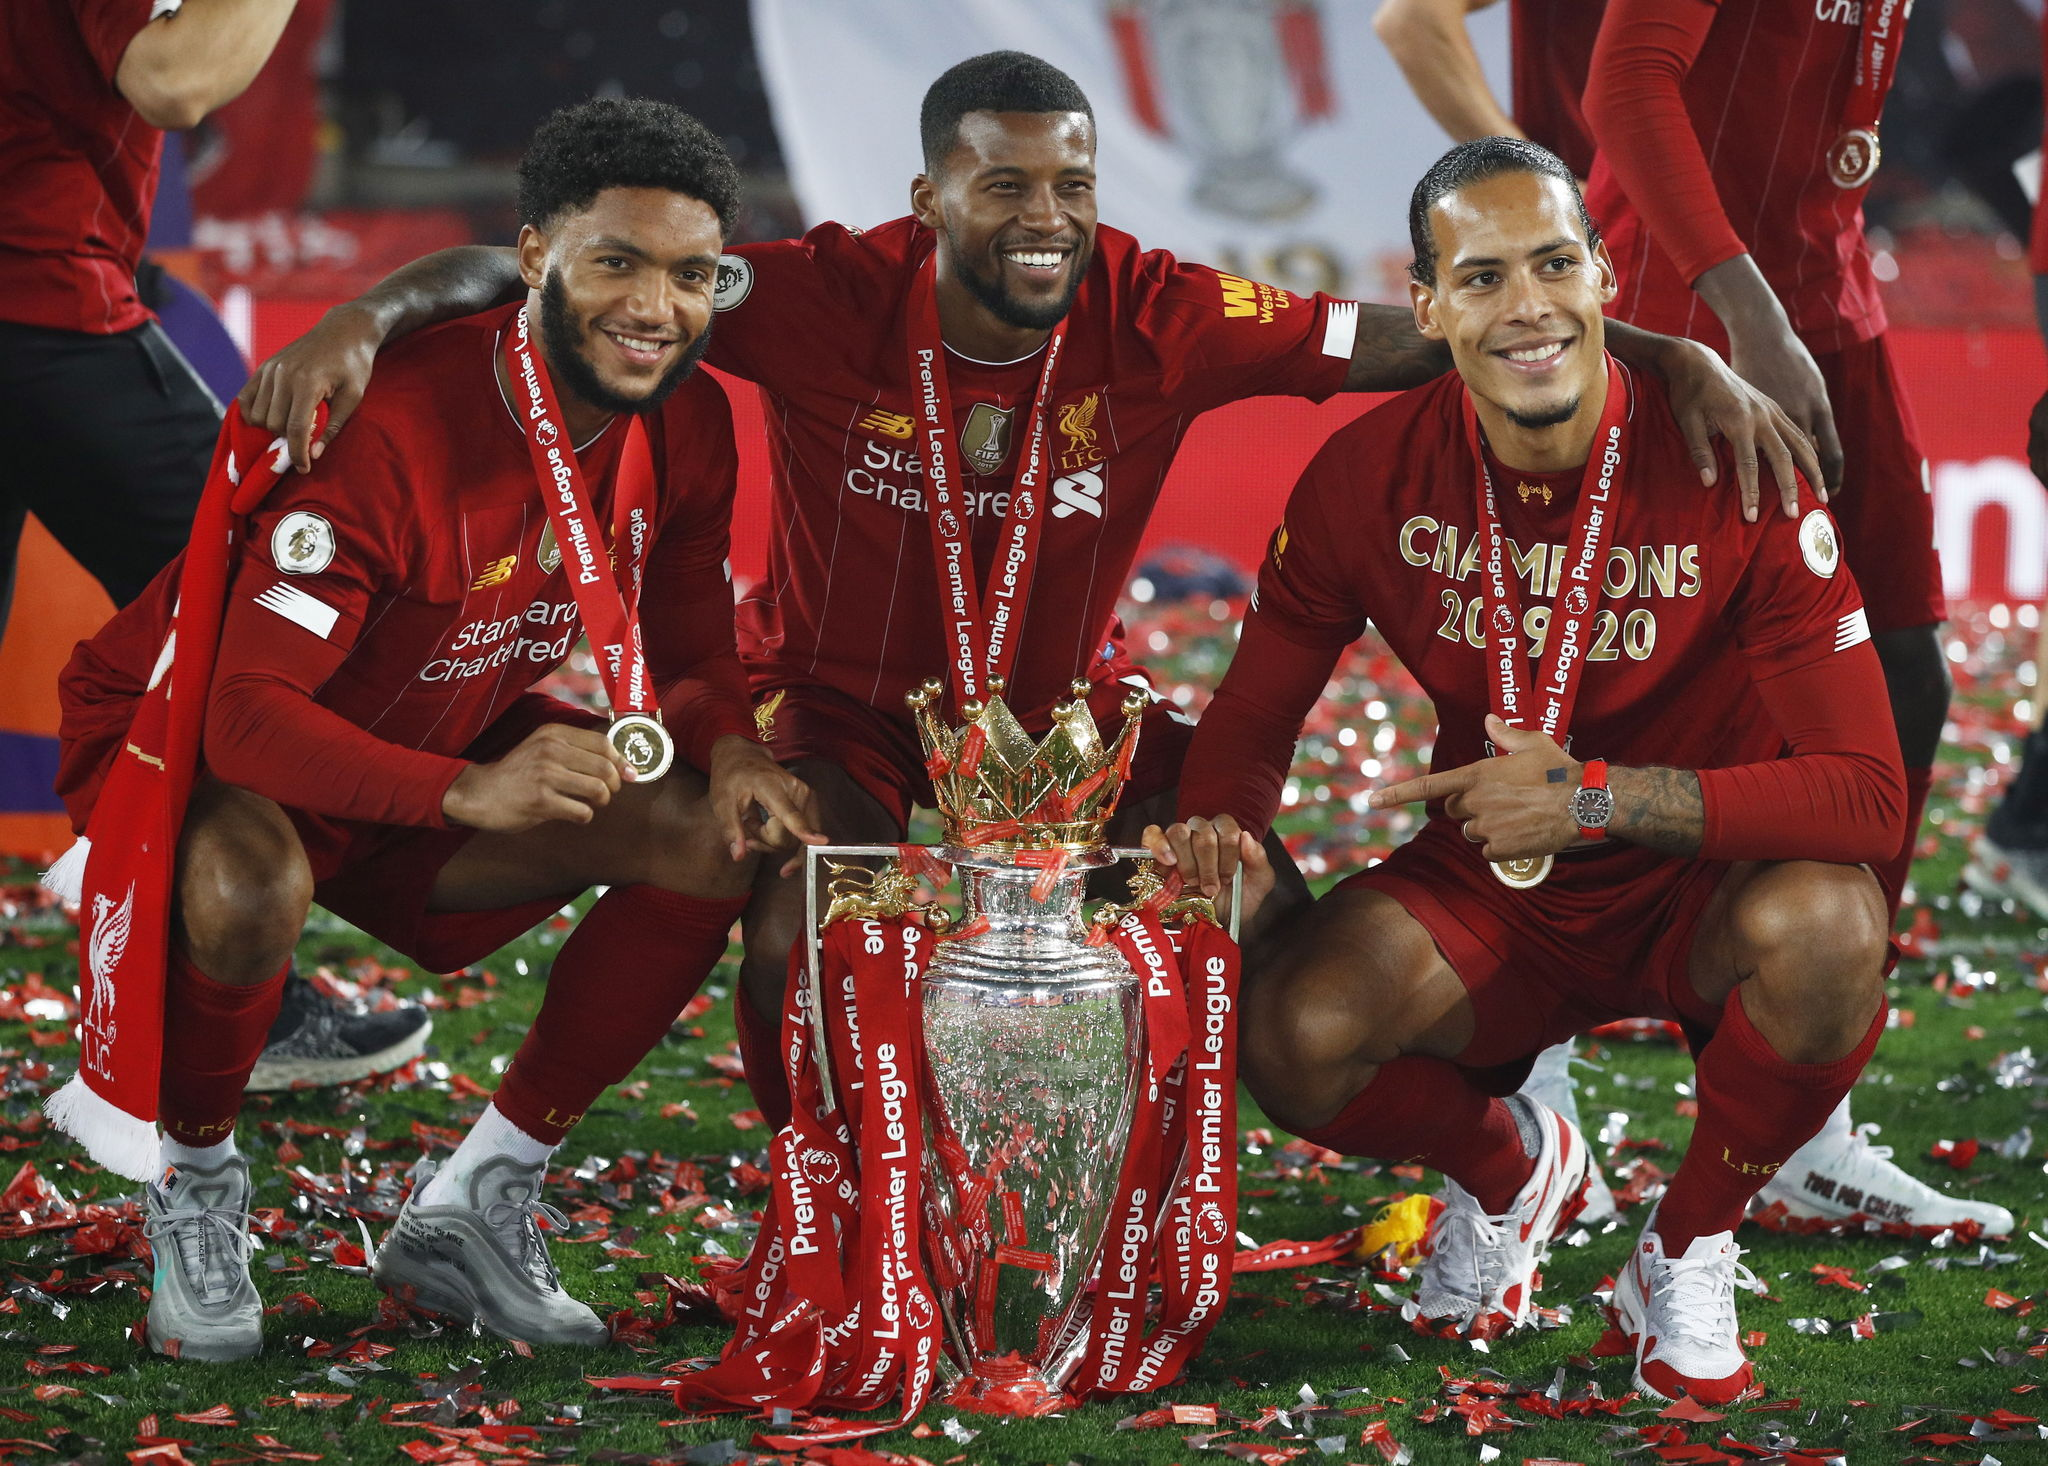 <HIT>Liverpool</HIT> (United Kingdom), 22/07/2020.- (L-R) <HIT>Liverpool</HIT>s Joe Gomez, Georginio Wijnaldum and Virgil van Dijk pose with the Premier League trophy following the English Premier League soccer match between <HIT>Liverpool</HIT> FC and Chelsea FC in <HIT>Liverpool</HIT>, Britain, 22 July 2020. (Reino Unido) EFE/EPA/Phil Noble/NMC/Pool EDITORIAL USE ONLY. No use with unauthorized audio, video, data, fixture lists, club/league logos or live services. Online in-match use limited to 120 images, no video emulation. No use in betting, games or single club/league/player publications